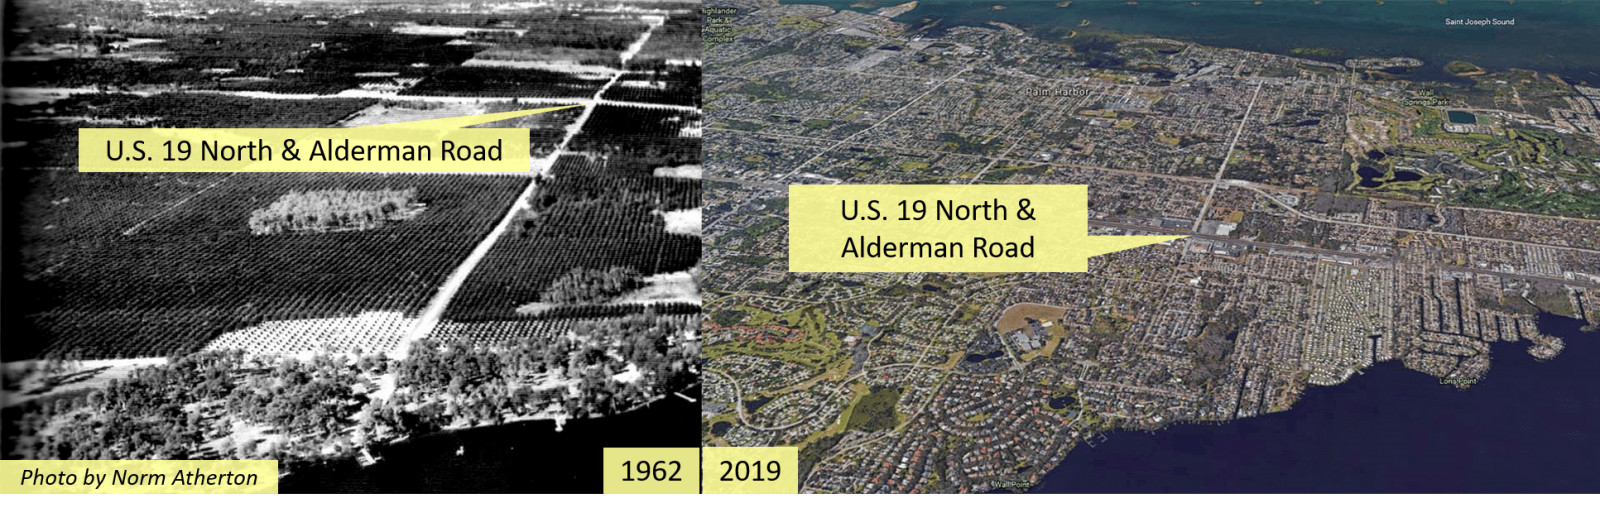 Palm Harbor Florida Area in 1962 and 2019